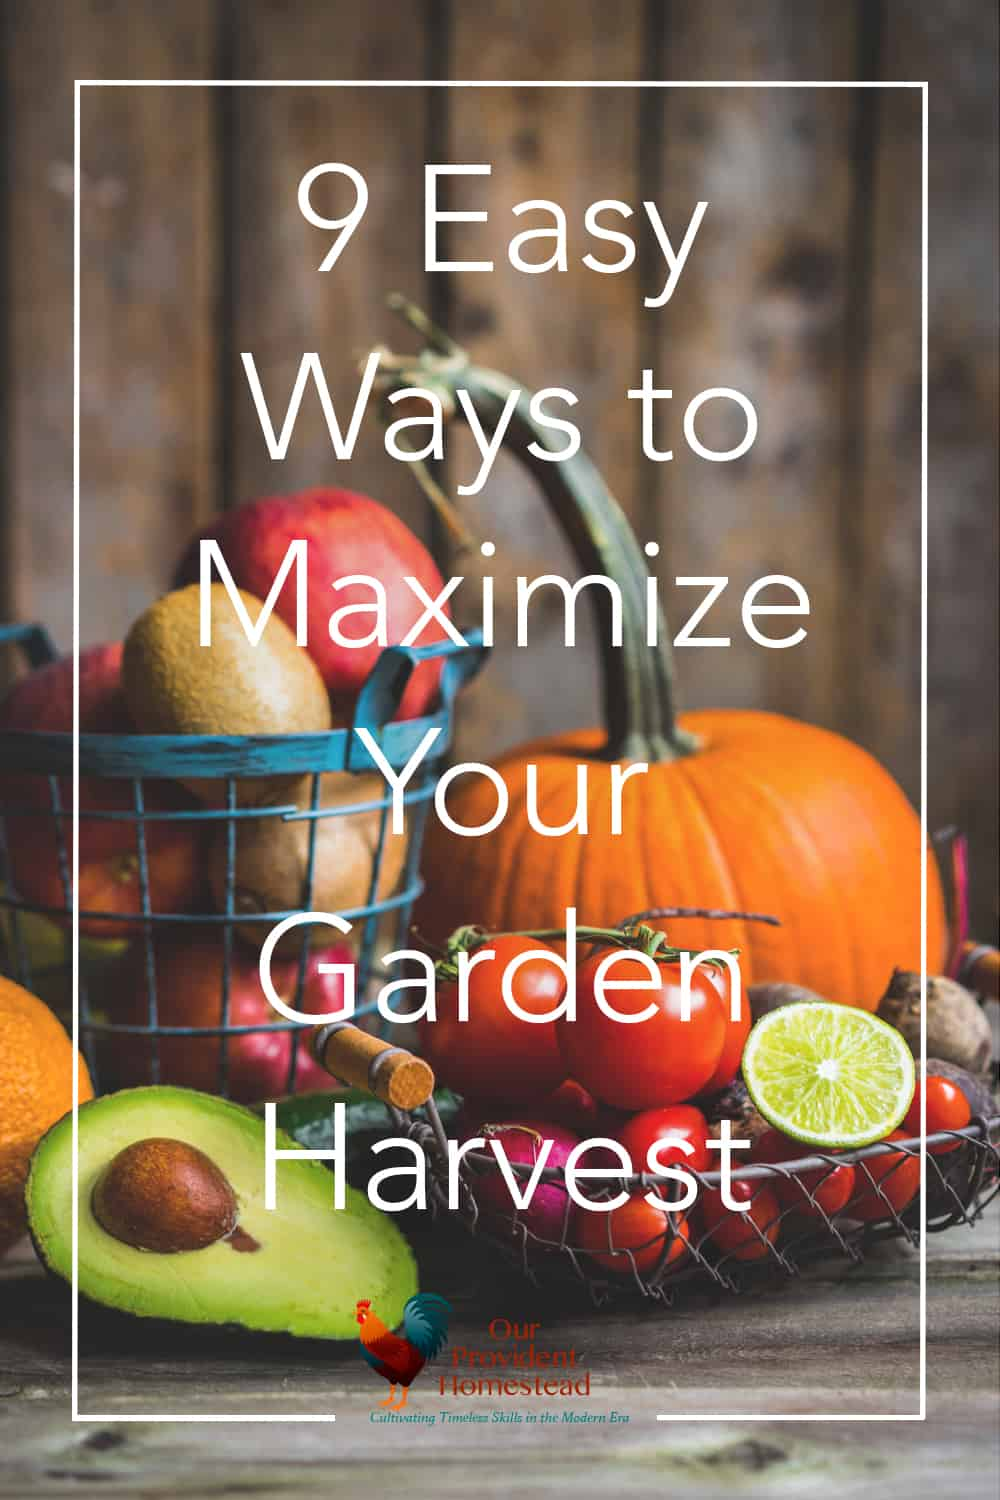 Don't you just love harvesting fresh food from your garden? Click here to see how to maximize your garden harvest today! #homesteading #gardening #fallharvest #harvest #gardeningtips